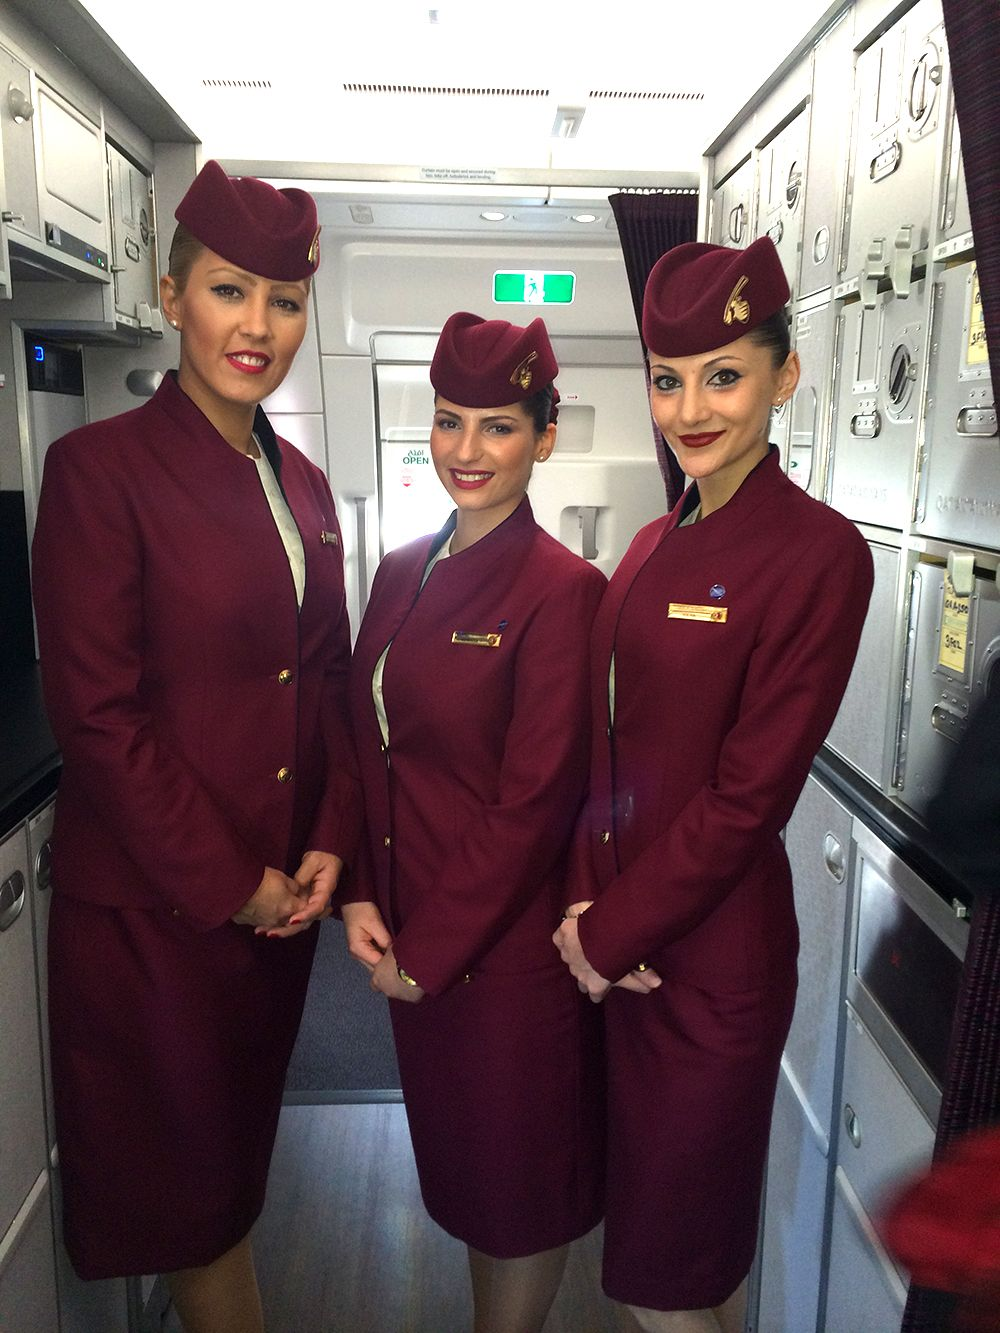 flight attendants share their travel beauty secrets is beauty flight attendants share their travel beauty secrets is 1 beauty tips and jet lag